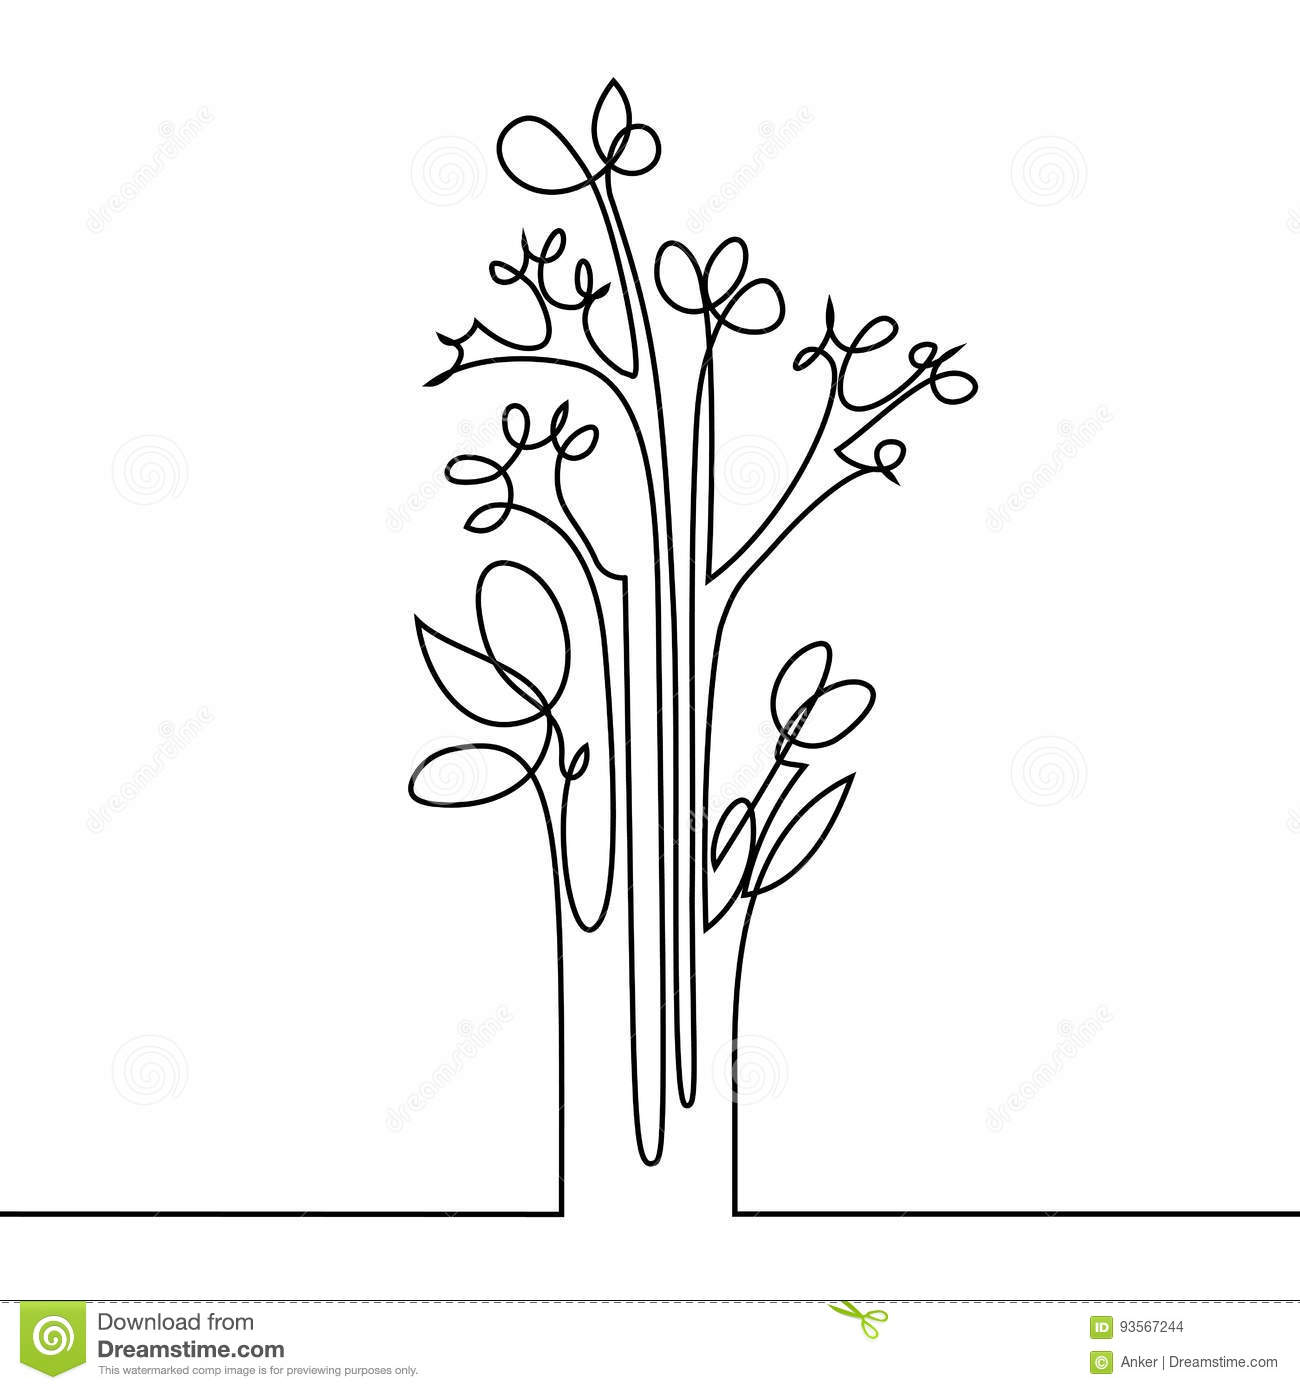 Continuous Line Drawing Flowers : Continuous line drawing of flowers stock vector